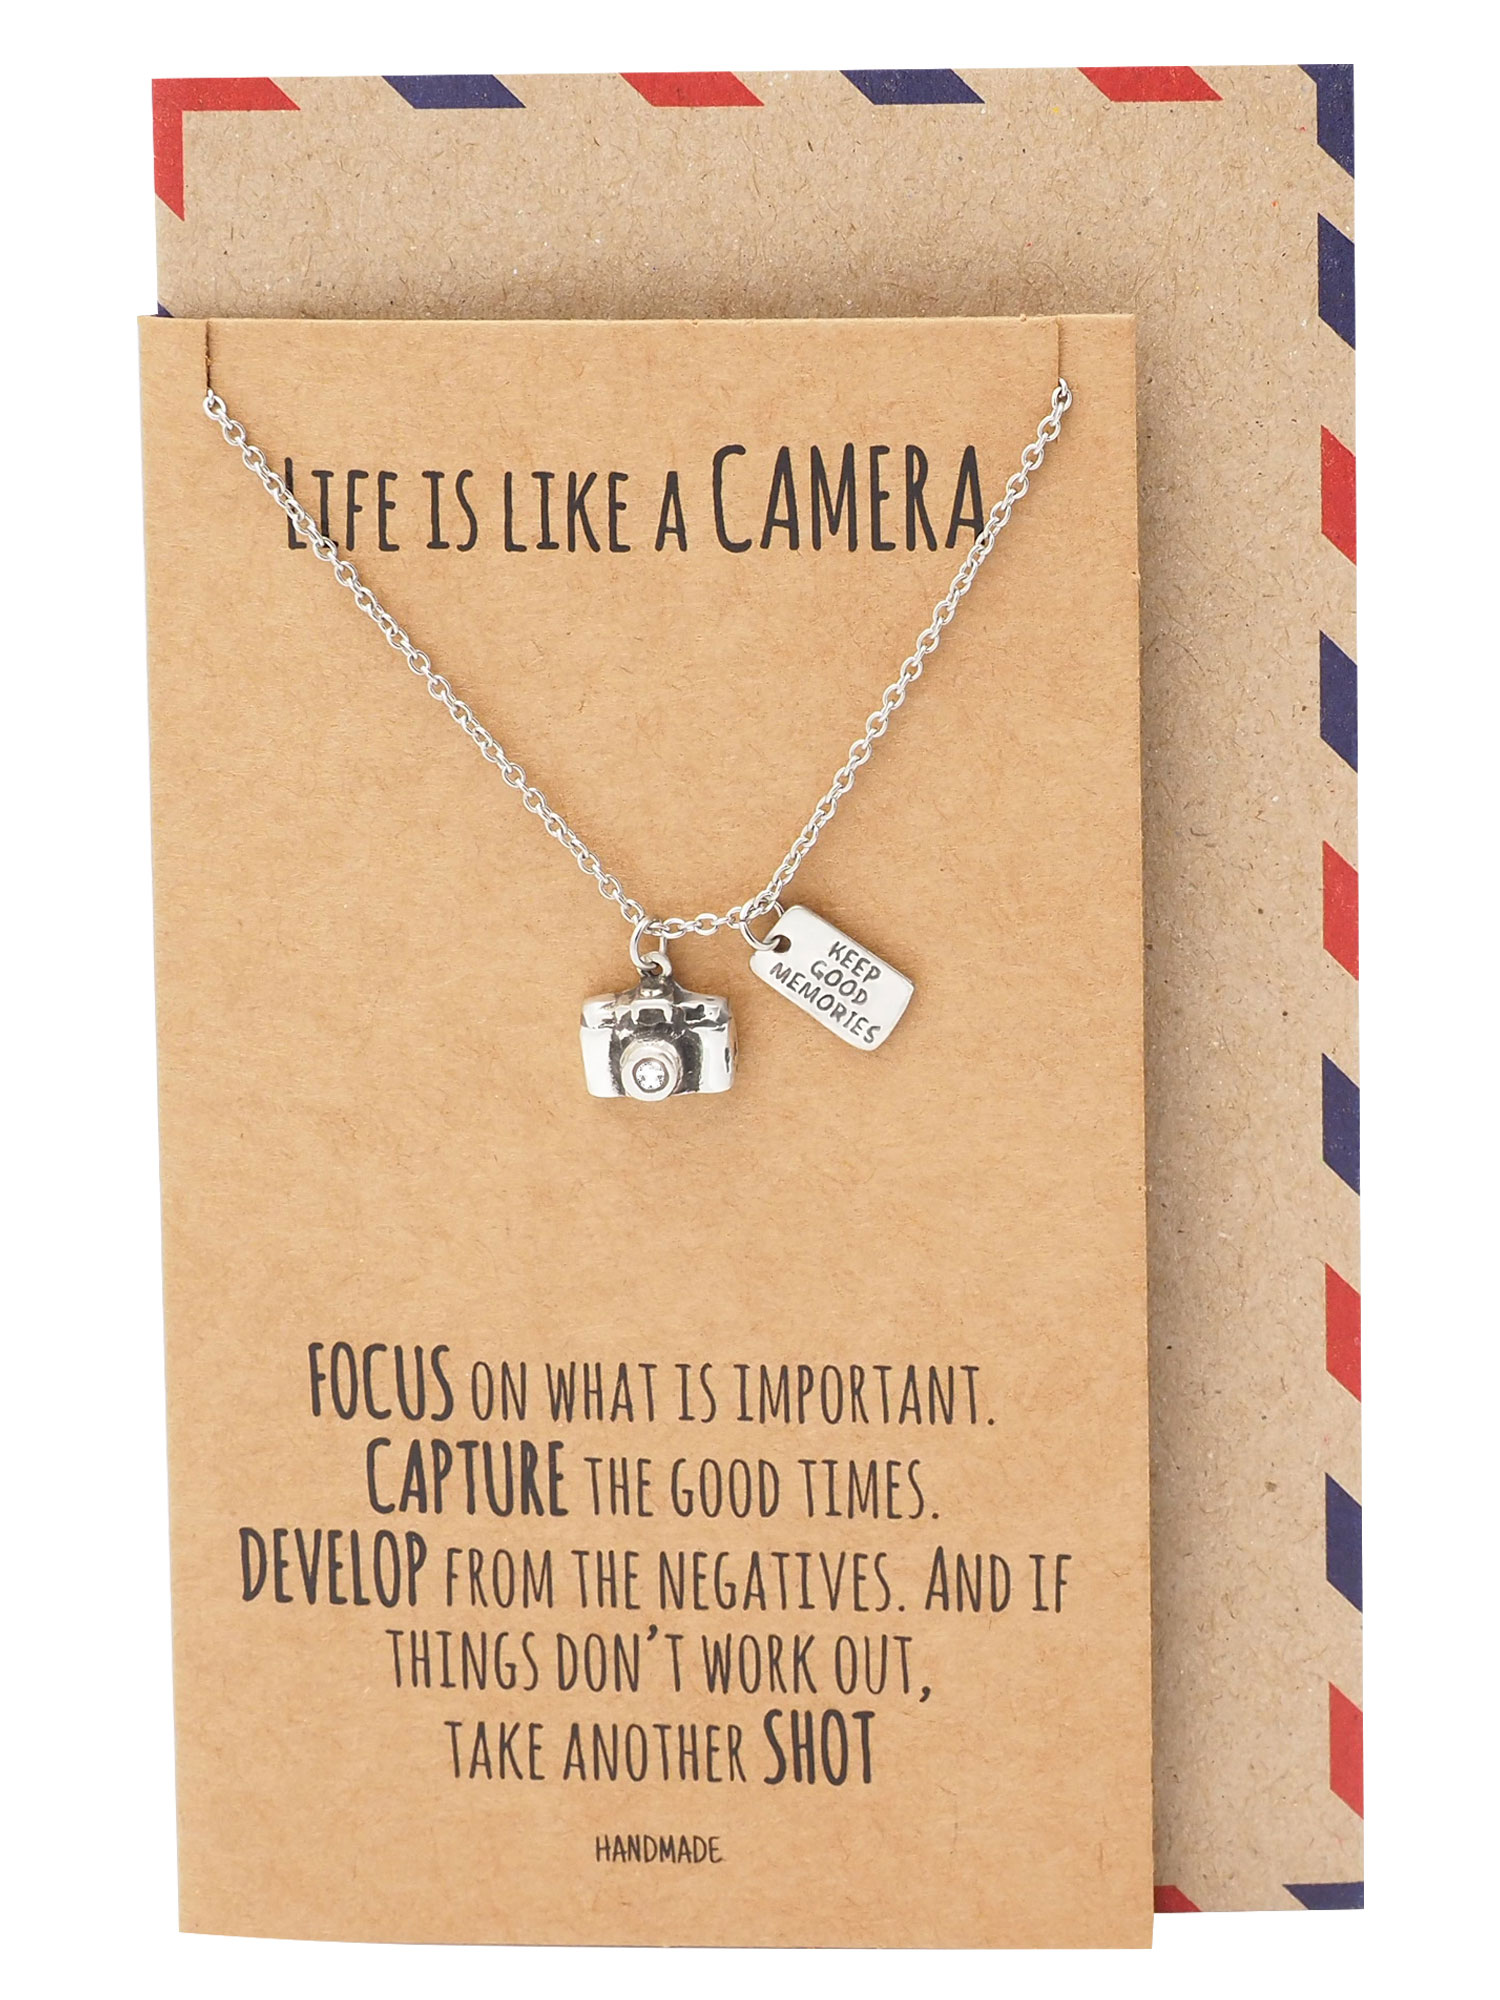 Quan Jewelry Cute Camera Miniature Pendant Necklace For Women Photography Gifts Best Friends Selfie Lovers Comes With Inspirational Quote